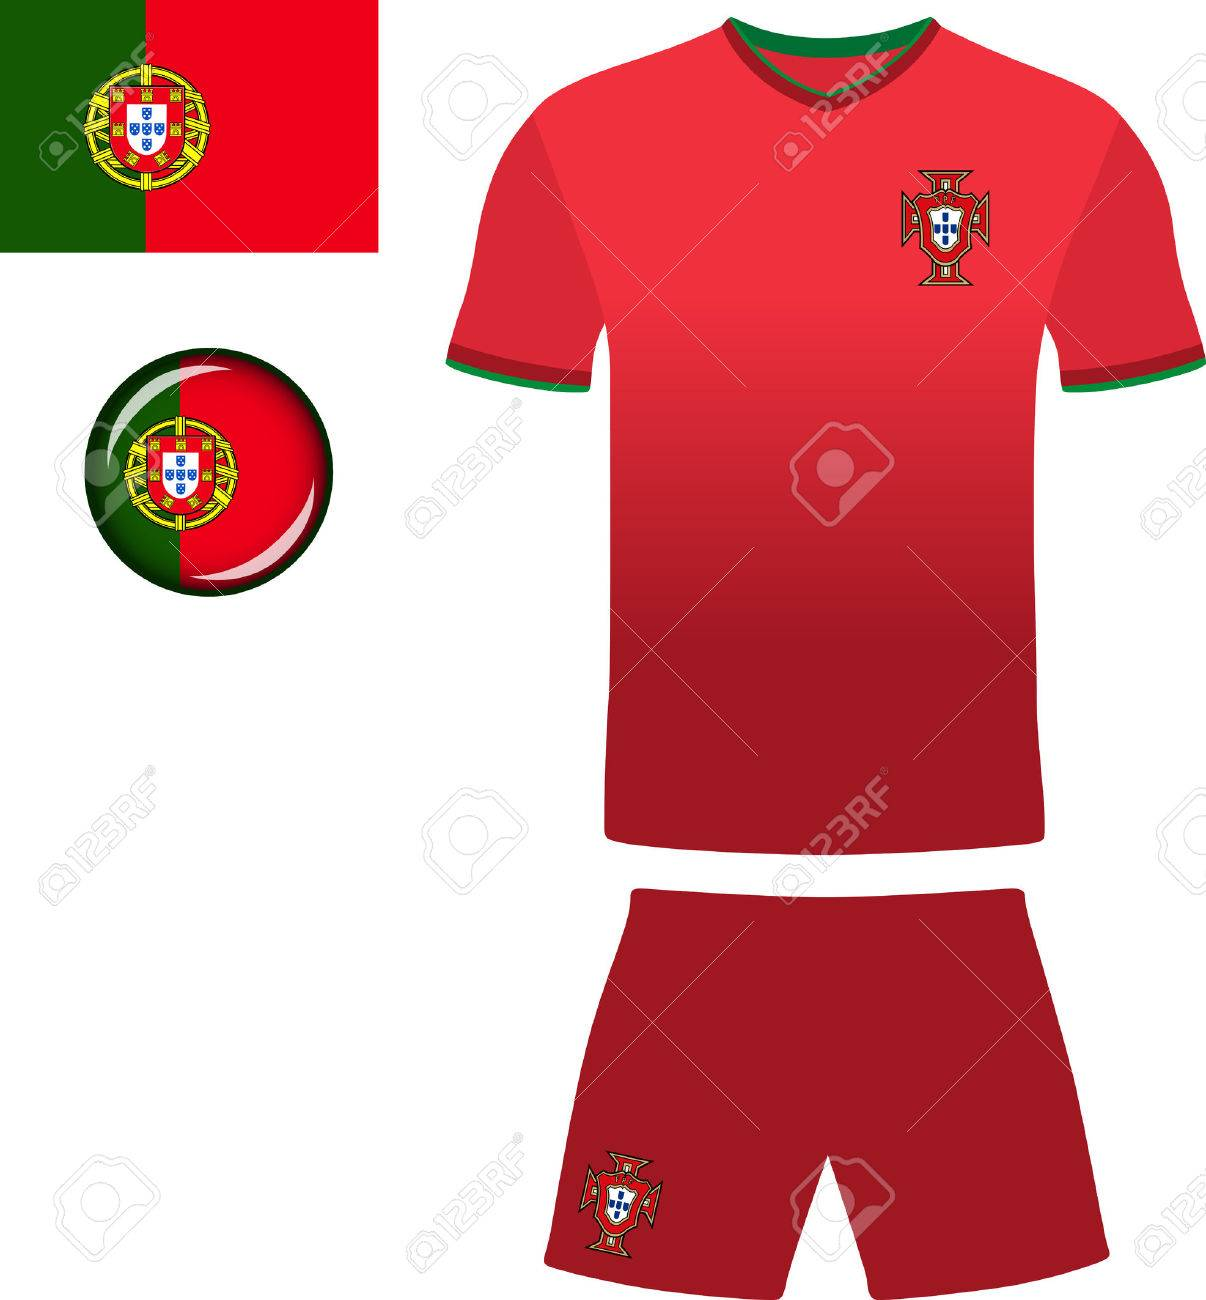 6e2a56234 Portugal Football Jersey. Vector graphic illustration representing the  national football jersey of Portugal. Stock